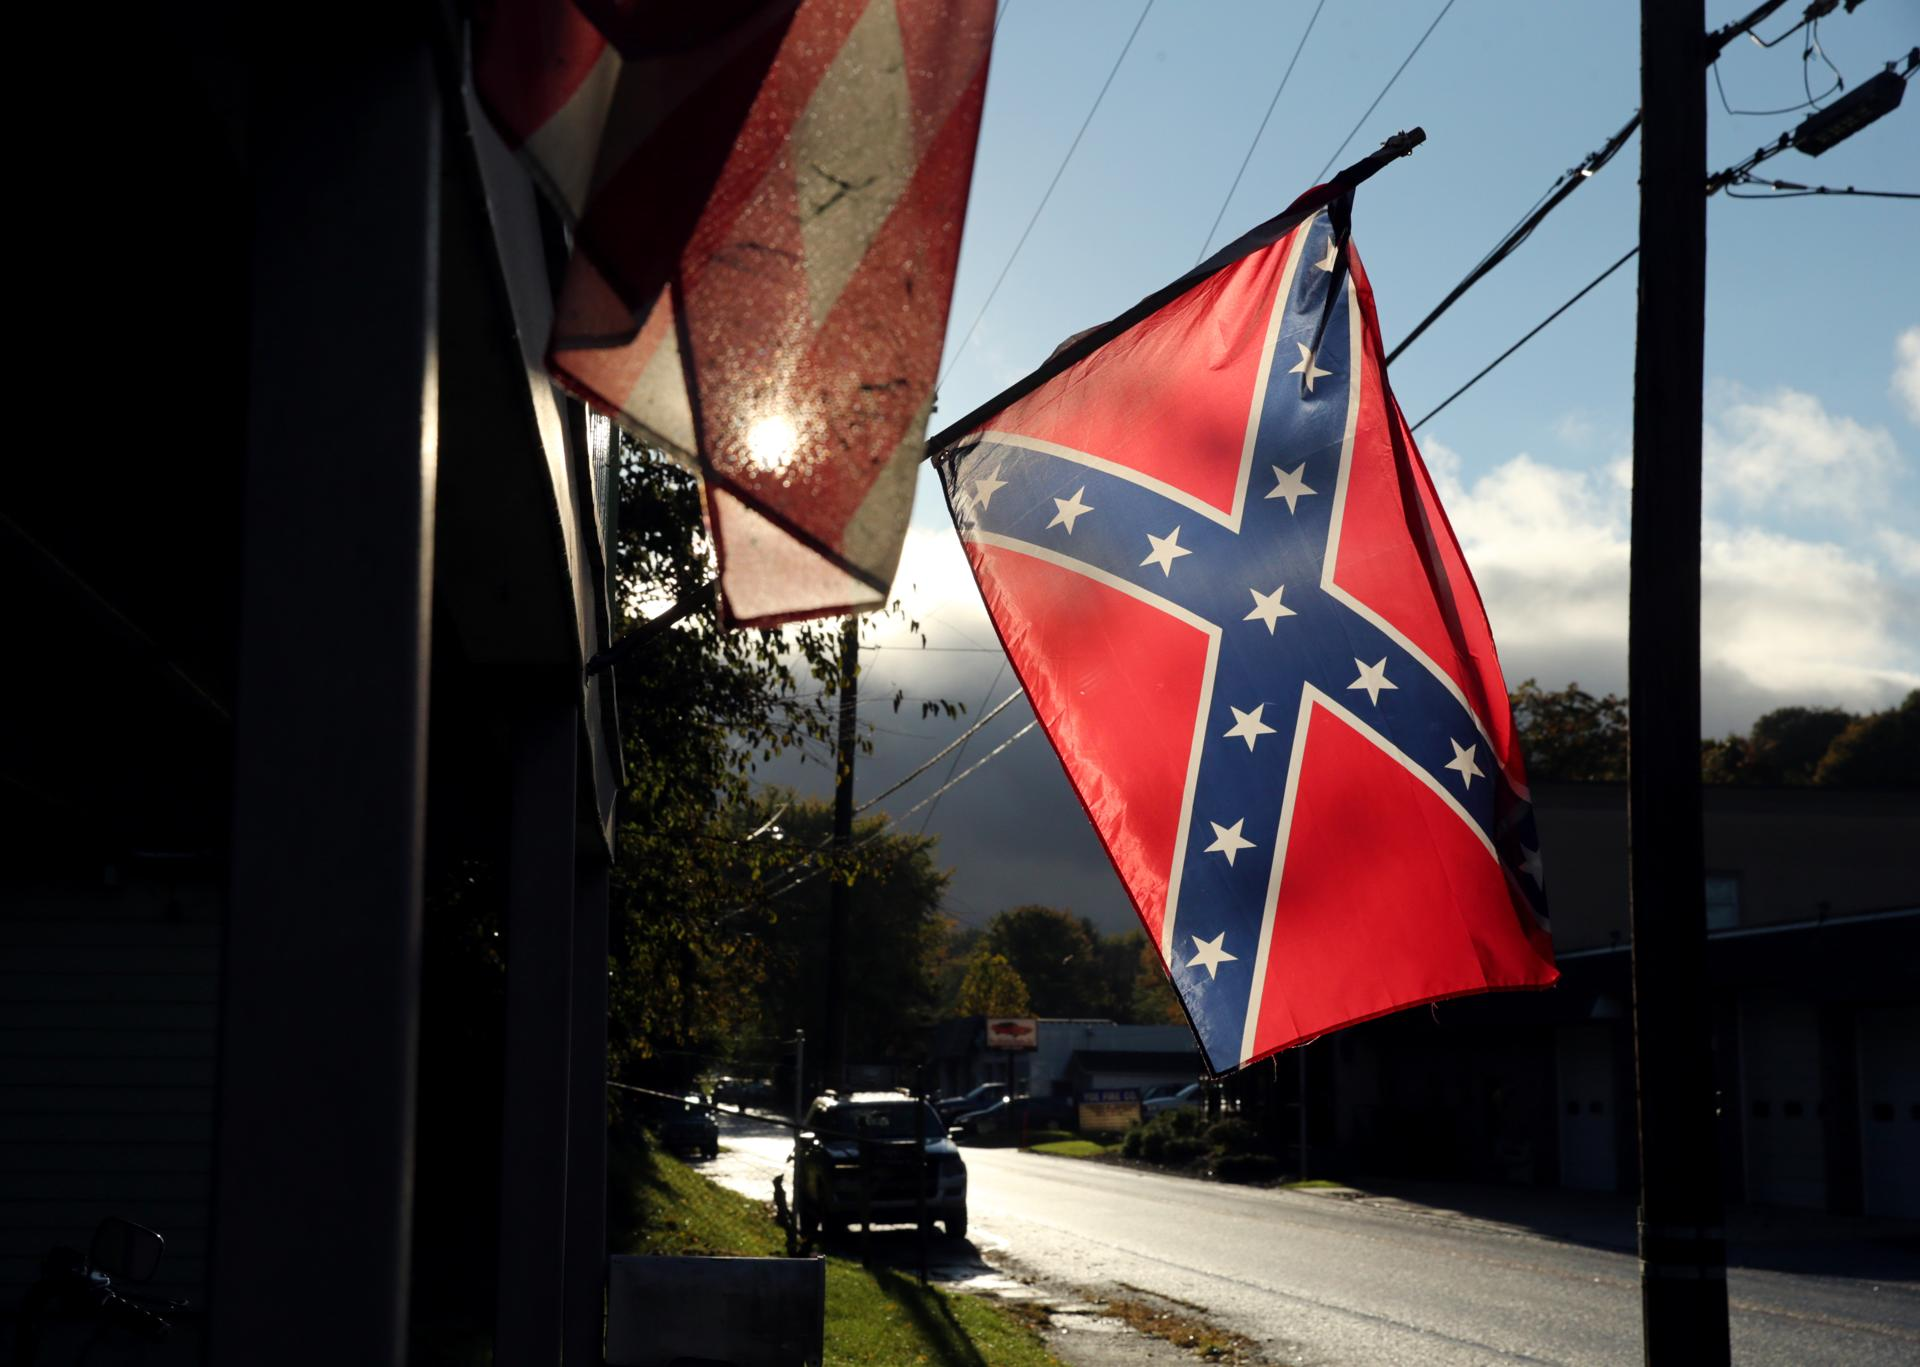 A Confederate flag hung outside a home in Yoe, a borough in York County, Pa.